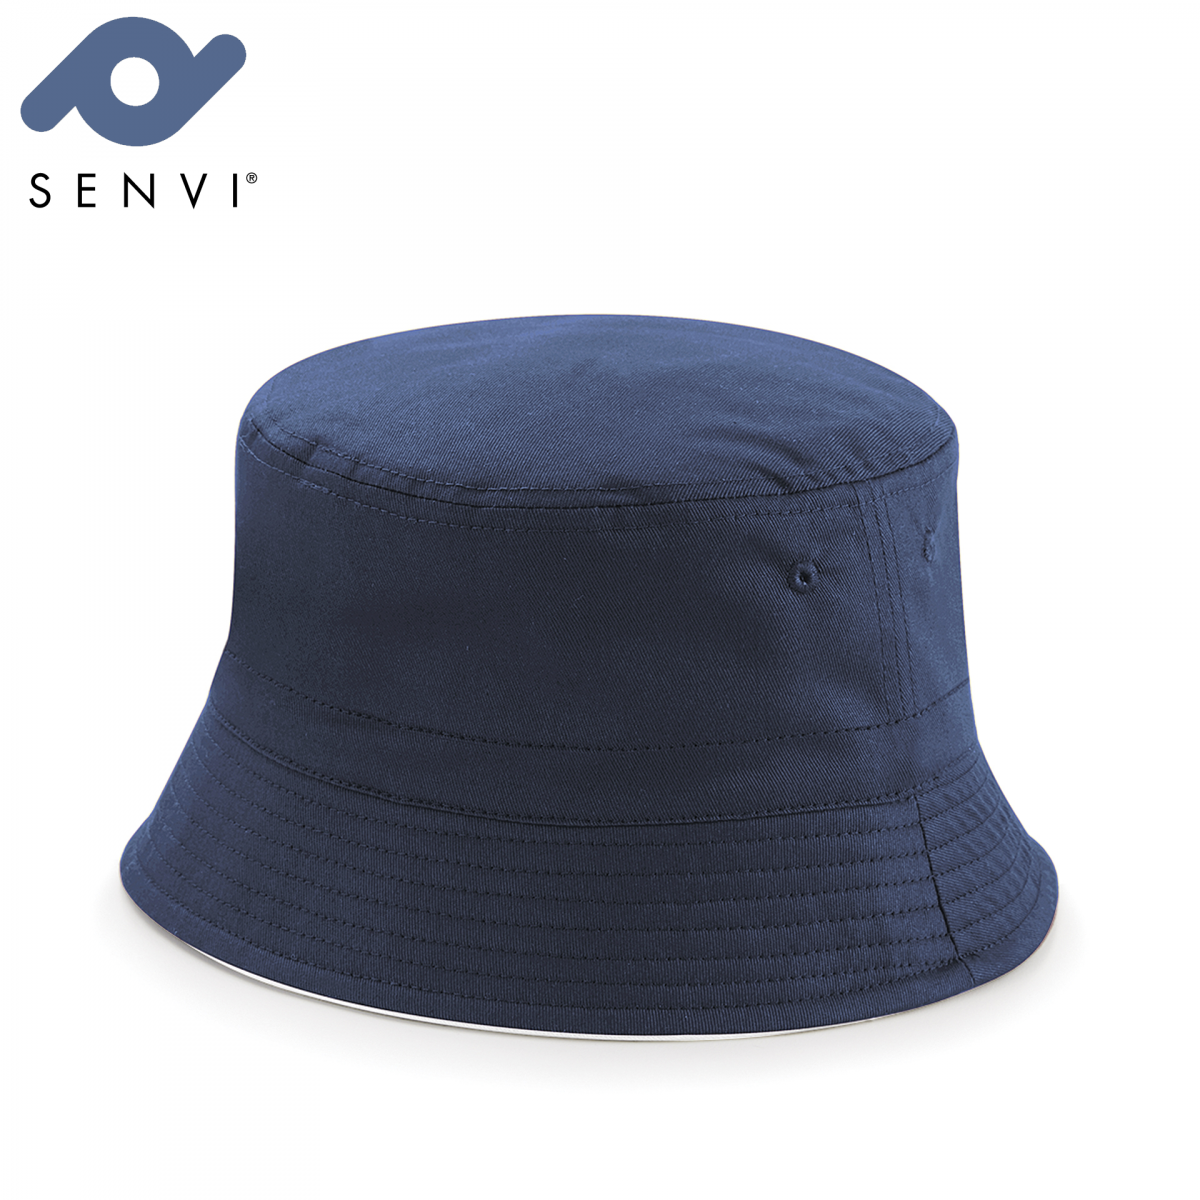 Senvi Reversible Bucket Hat Maat L/XL Blauw Wit